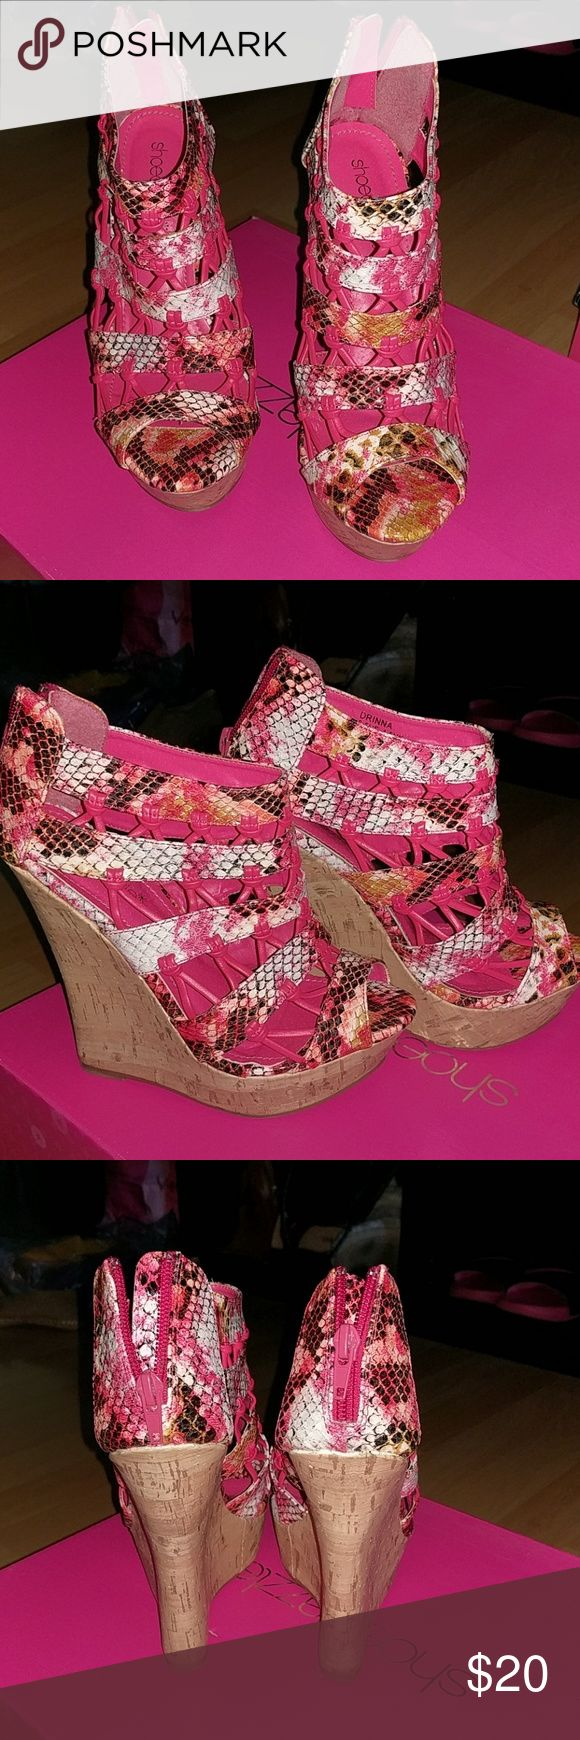 Pink wedges Pink snake patterned wedges Shoe Dazzle Shoes Wedges